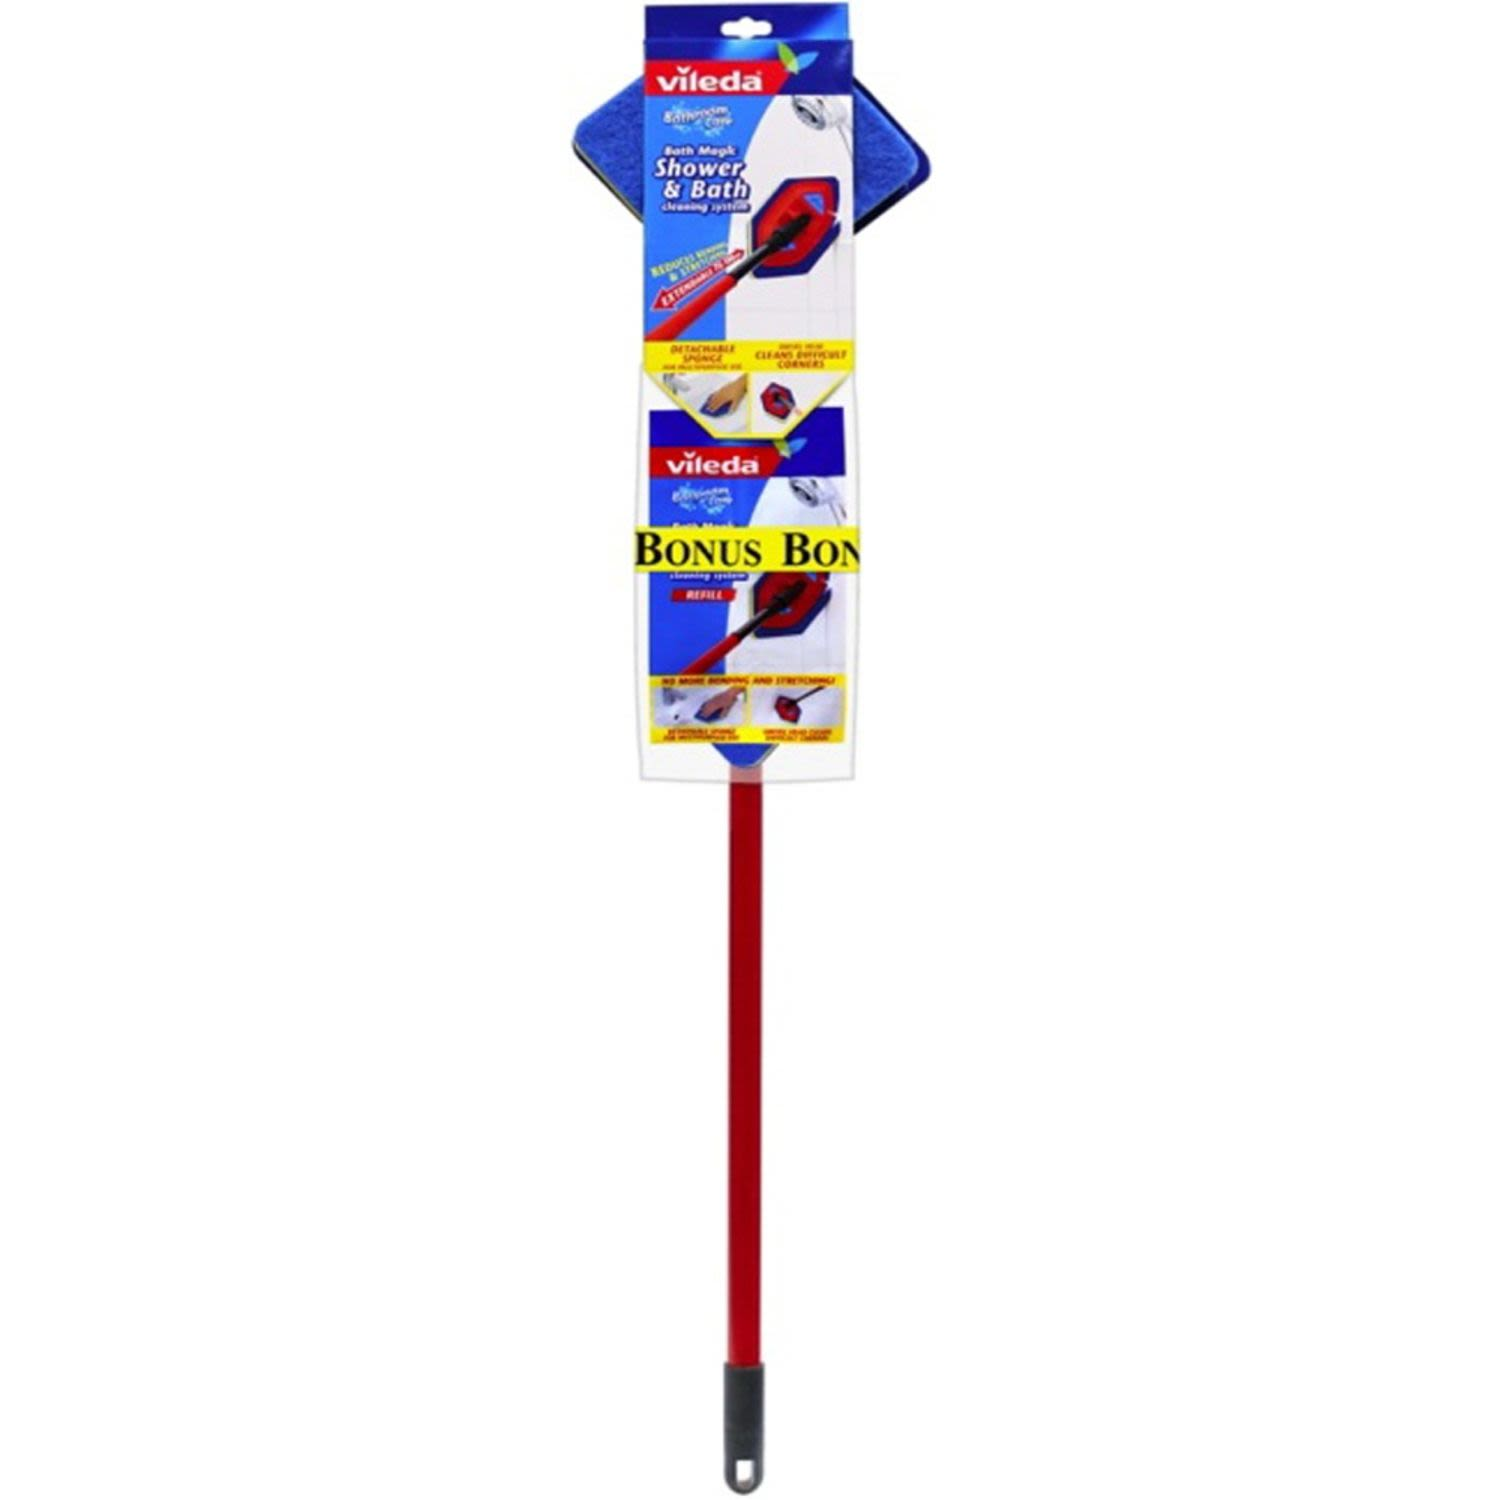 - Extendable handle reduces bending and stretching.  - Includes short handle for cleaning in tight spaces.  - Specially designed swivel head gets into difficult corners.  - With cloth holders for quick cleaning. Recommend for use with Vileda Active Fresh Wipes